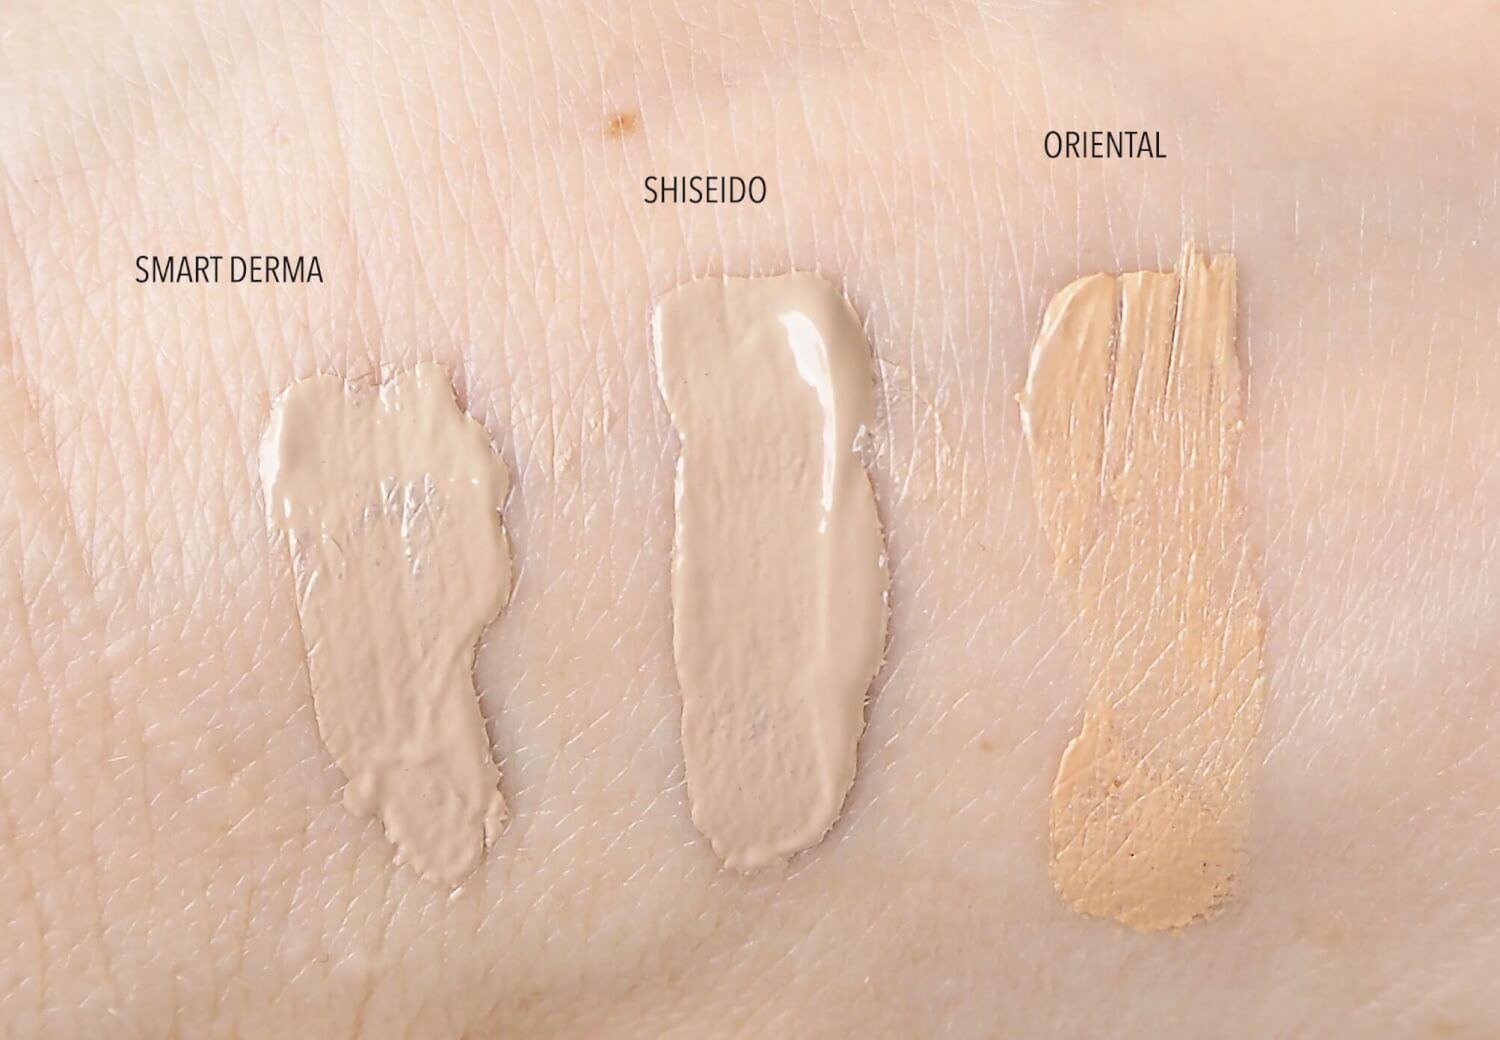 Swatch Skin79 The Oriental Gold, Skin79 Smart Derma, Shiseido hydrating BB